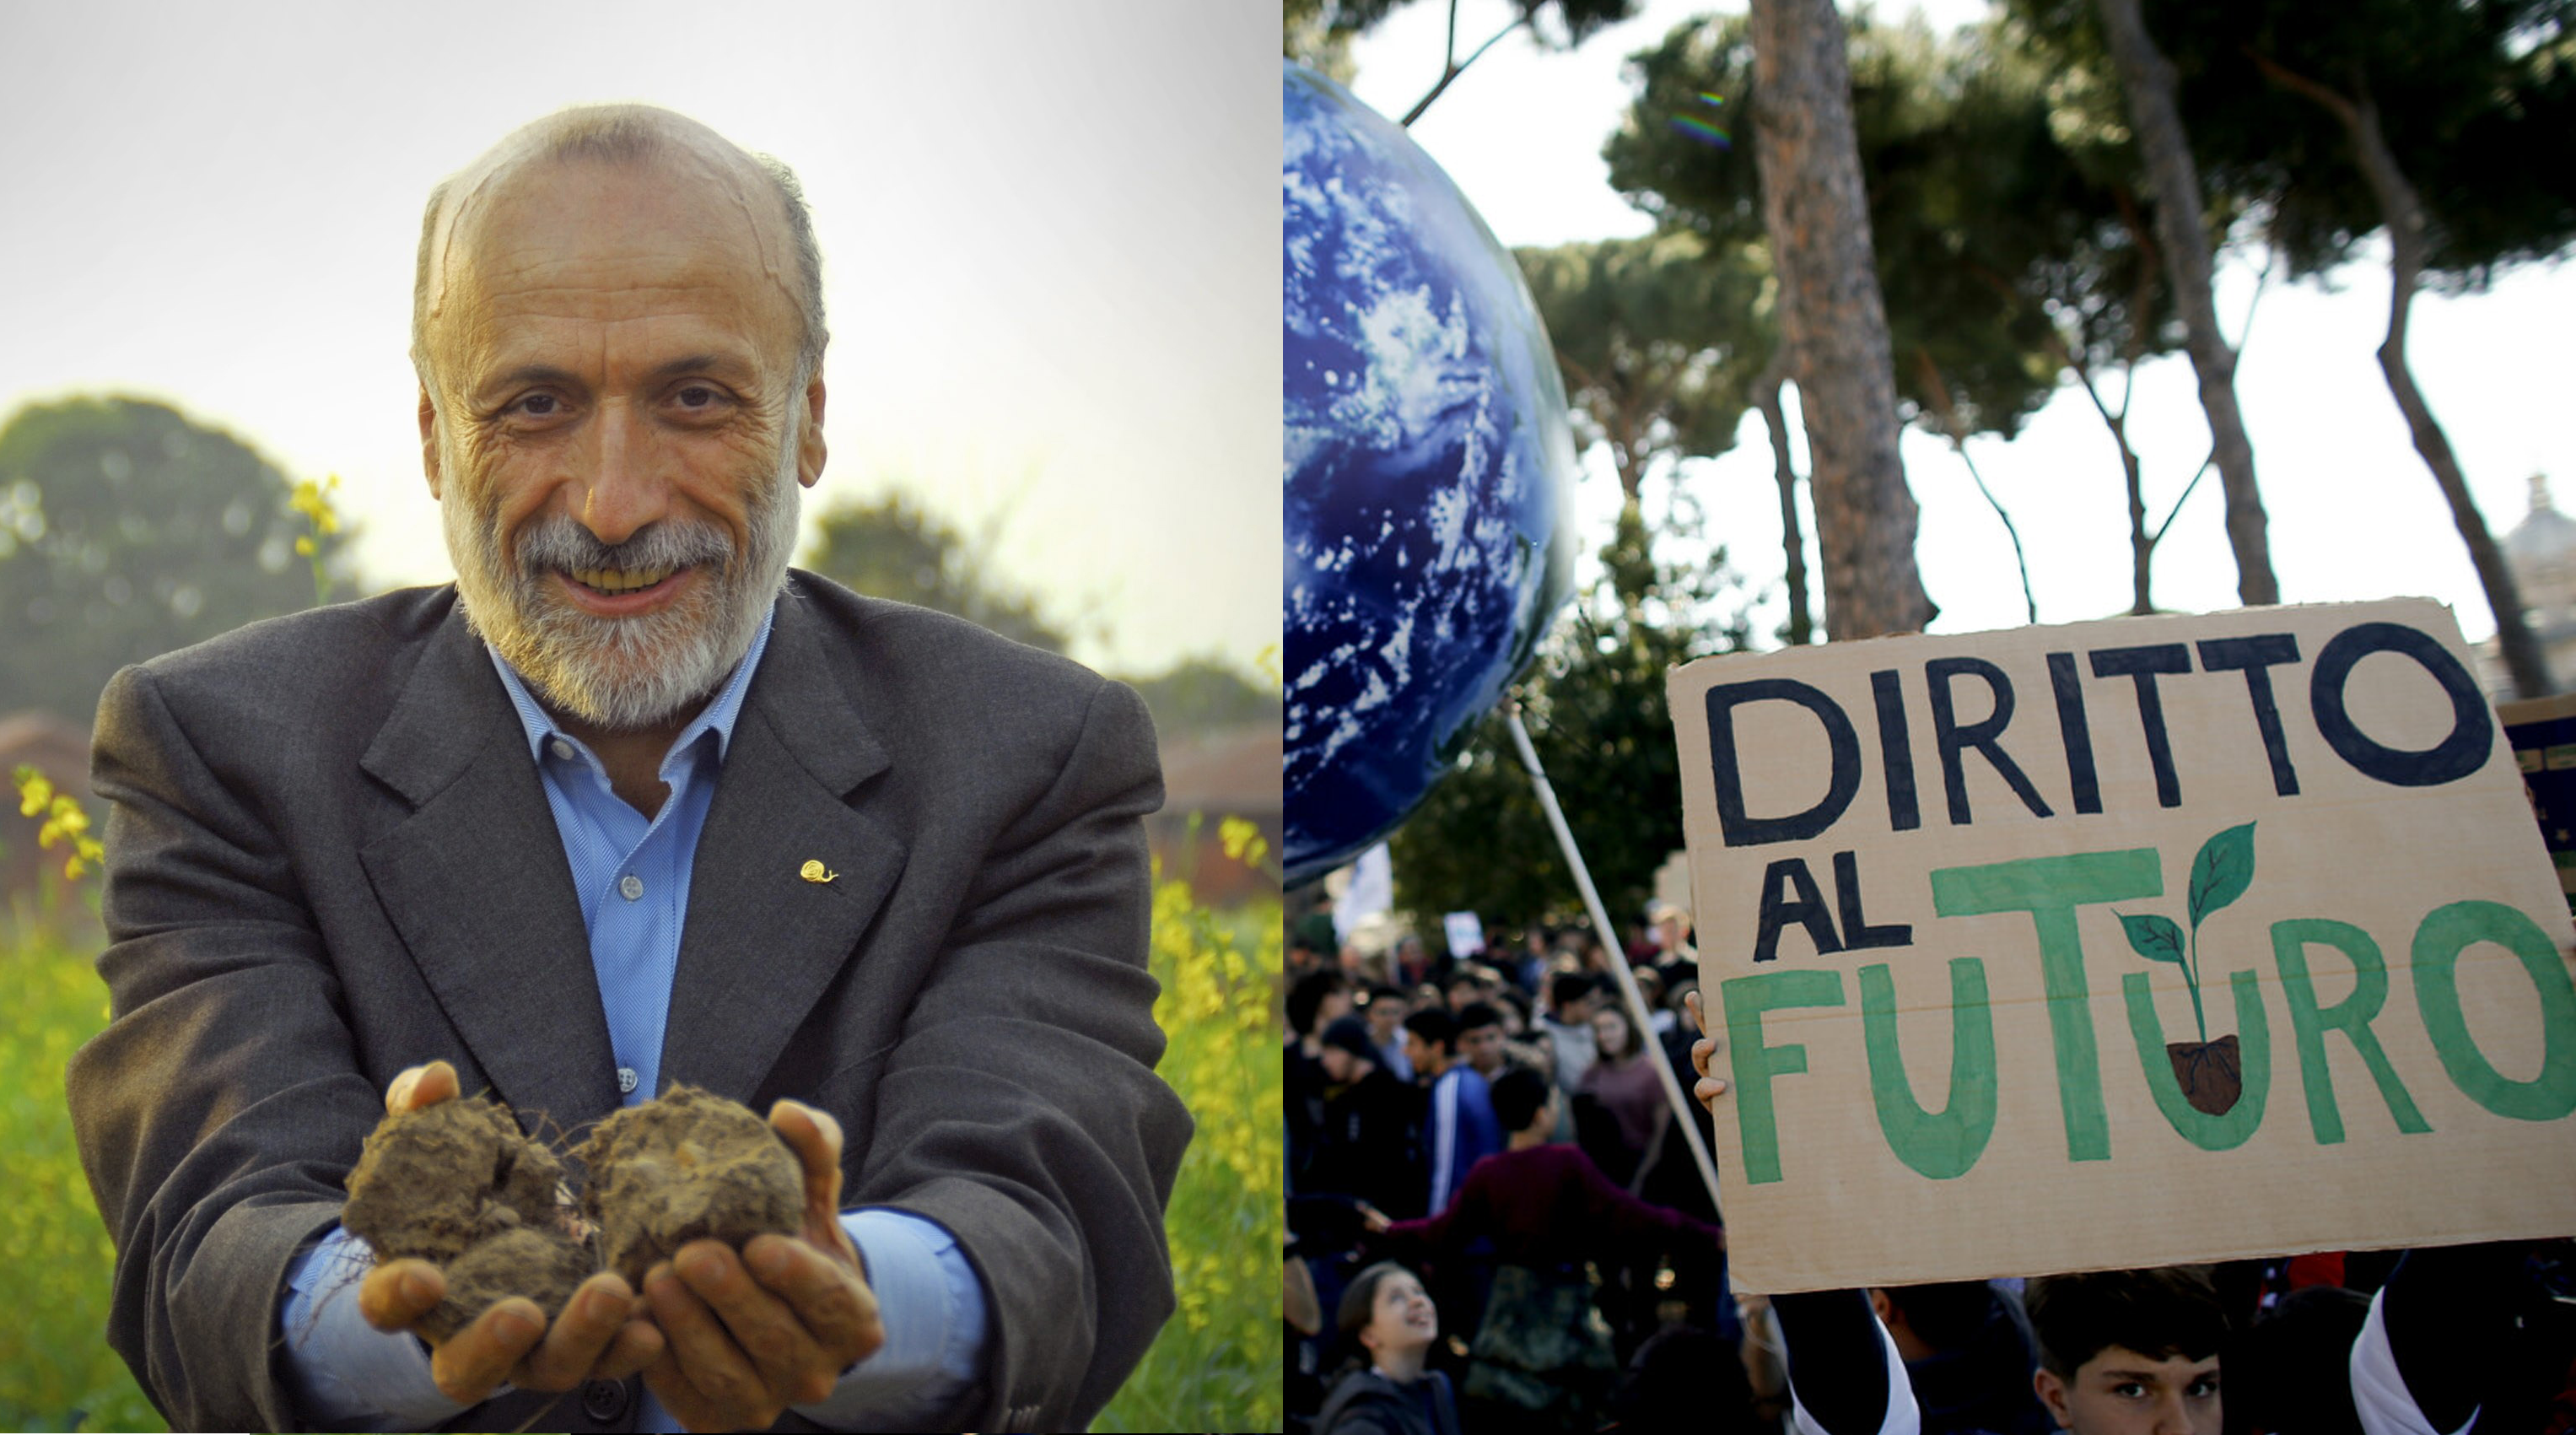 Carlo Petrini incontra Fridays For Future